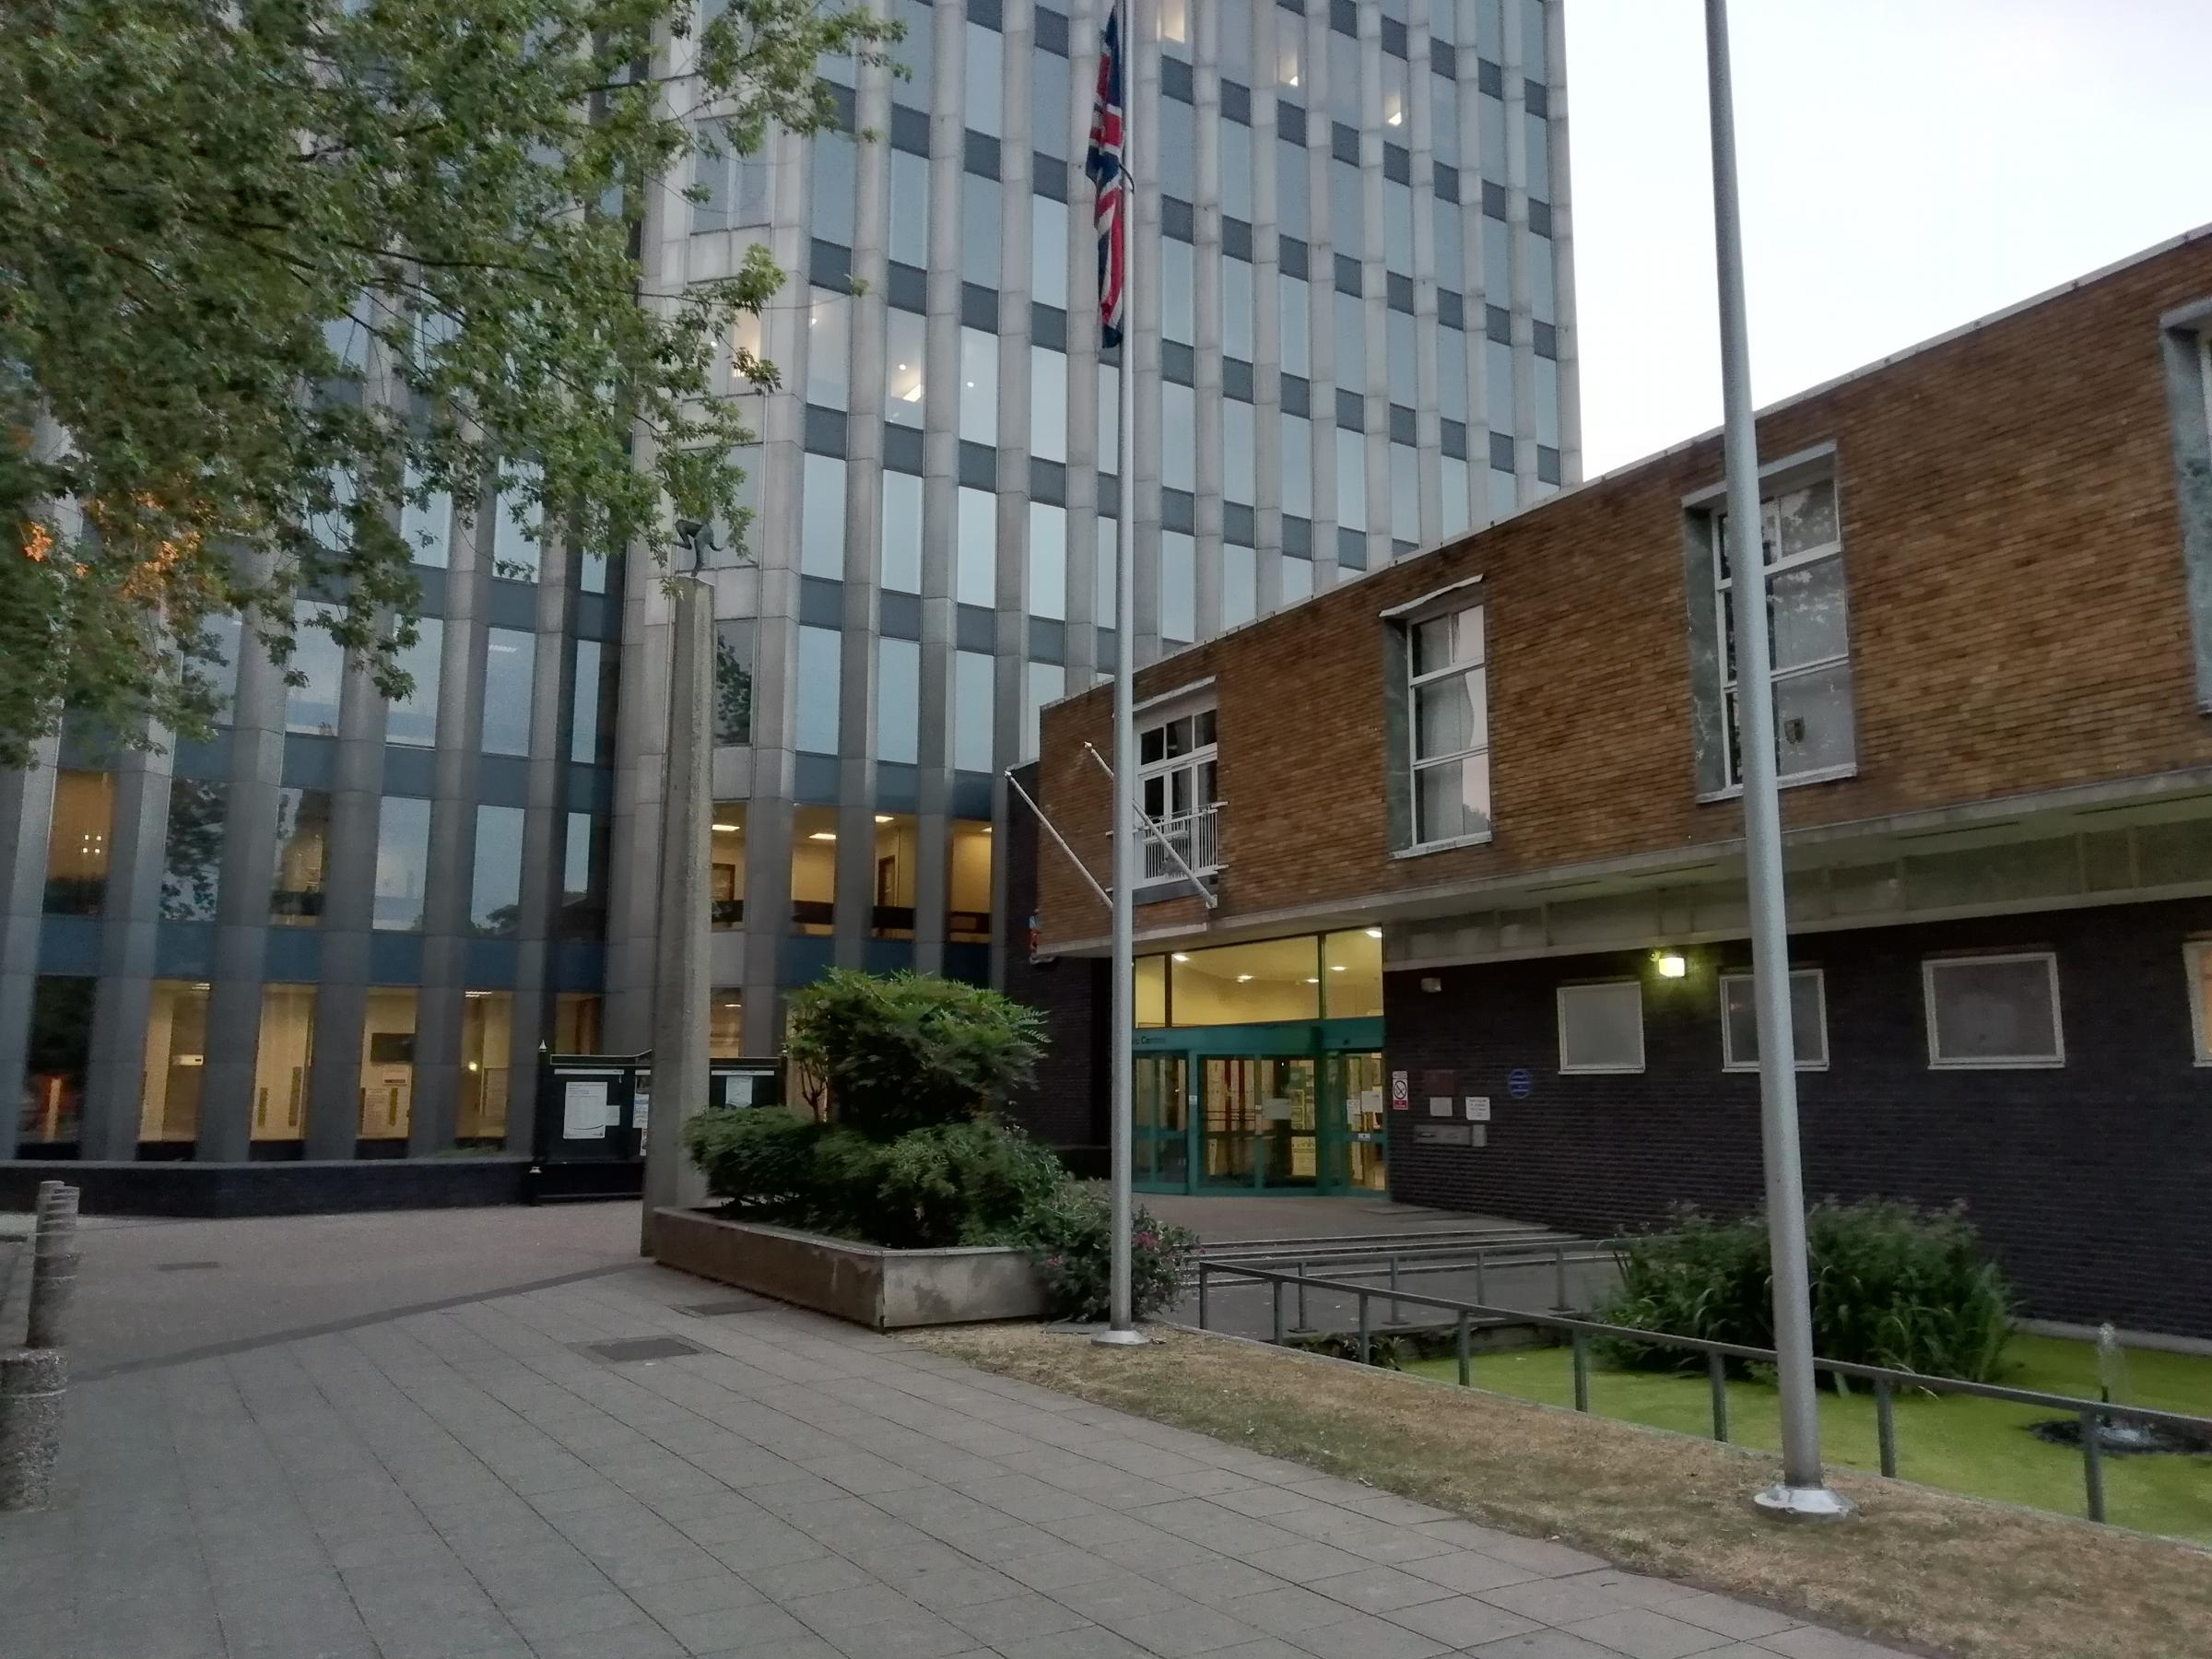 Enfield Civic Centre